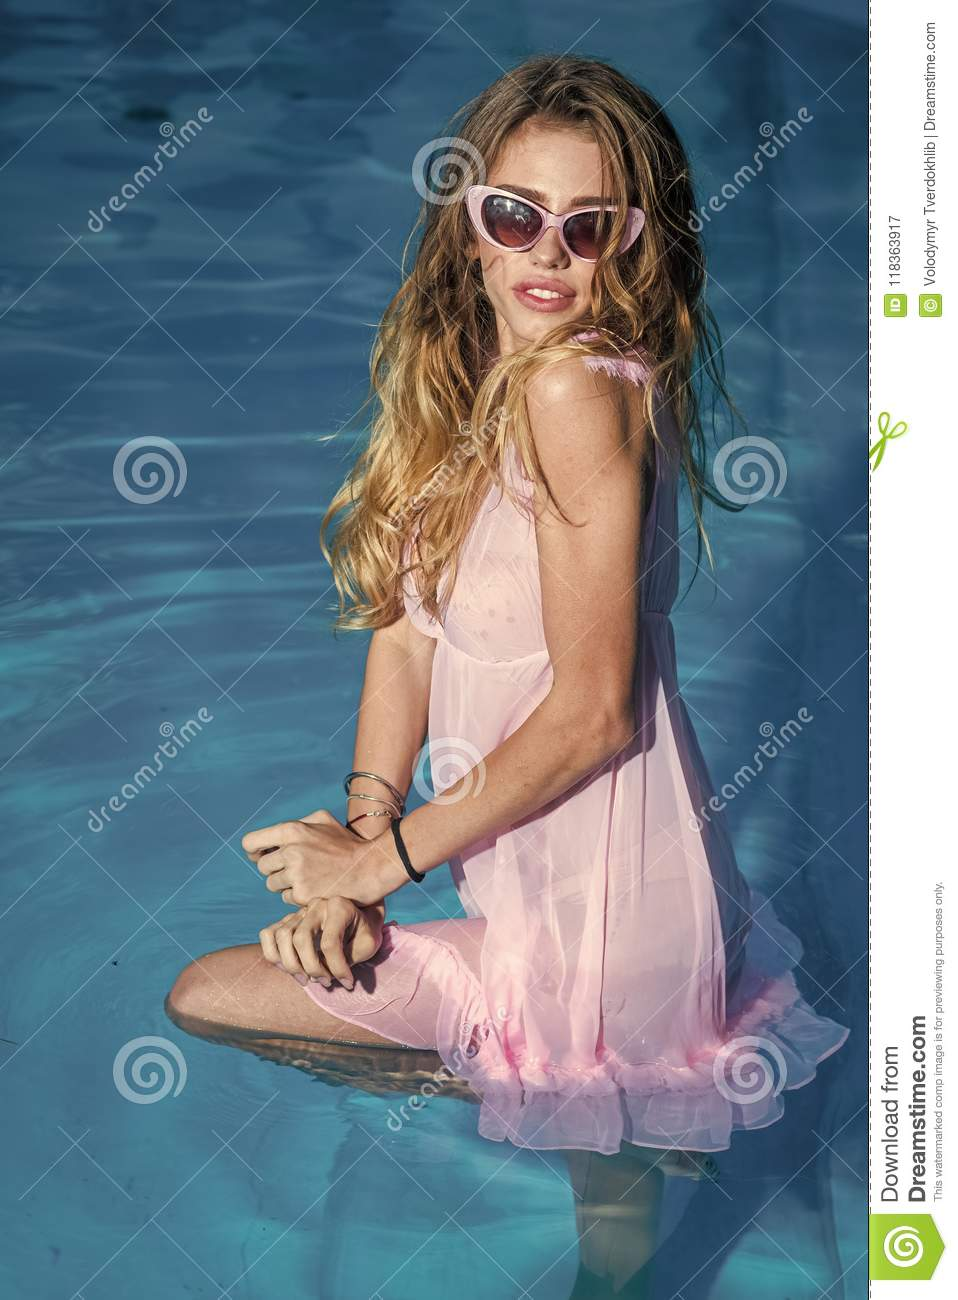 Maldives or Miami beach. Fashion and beauty of woman with natural makeup and hair.